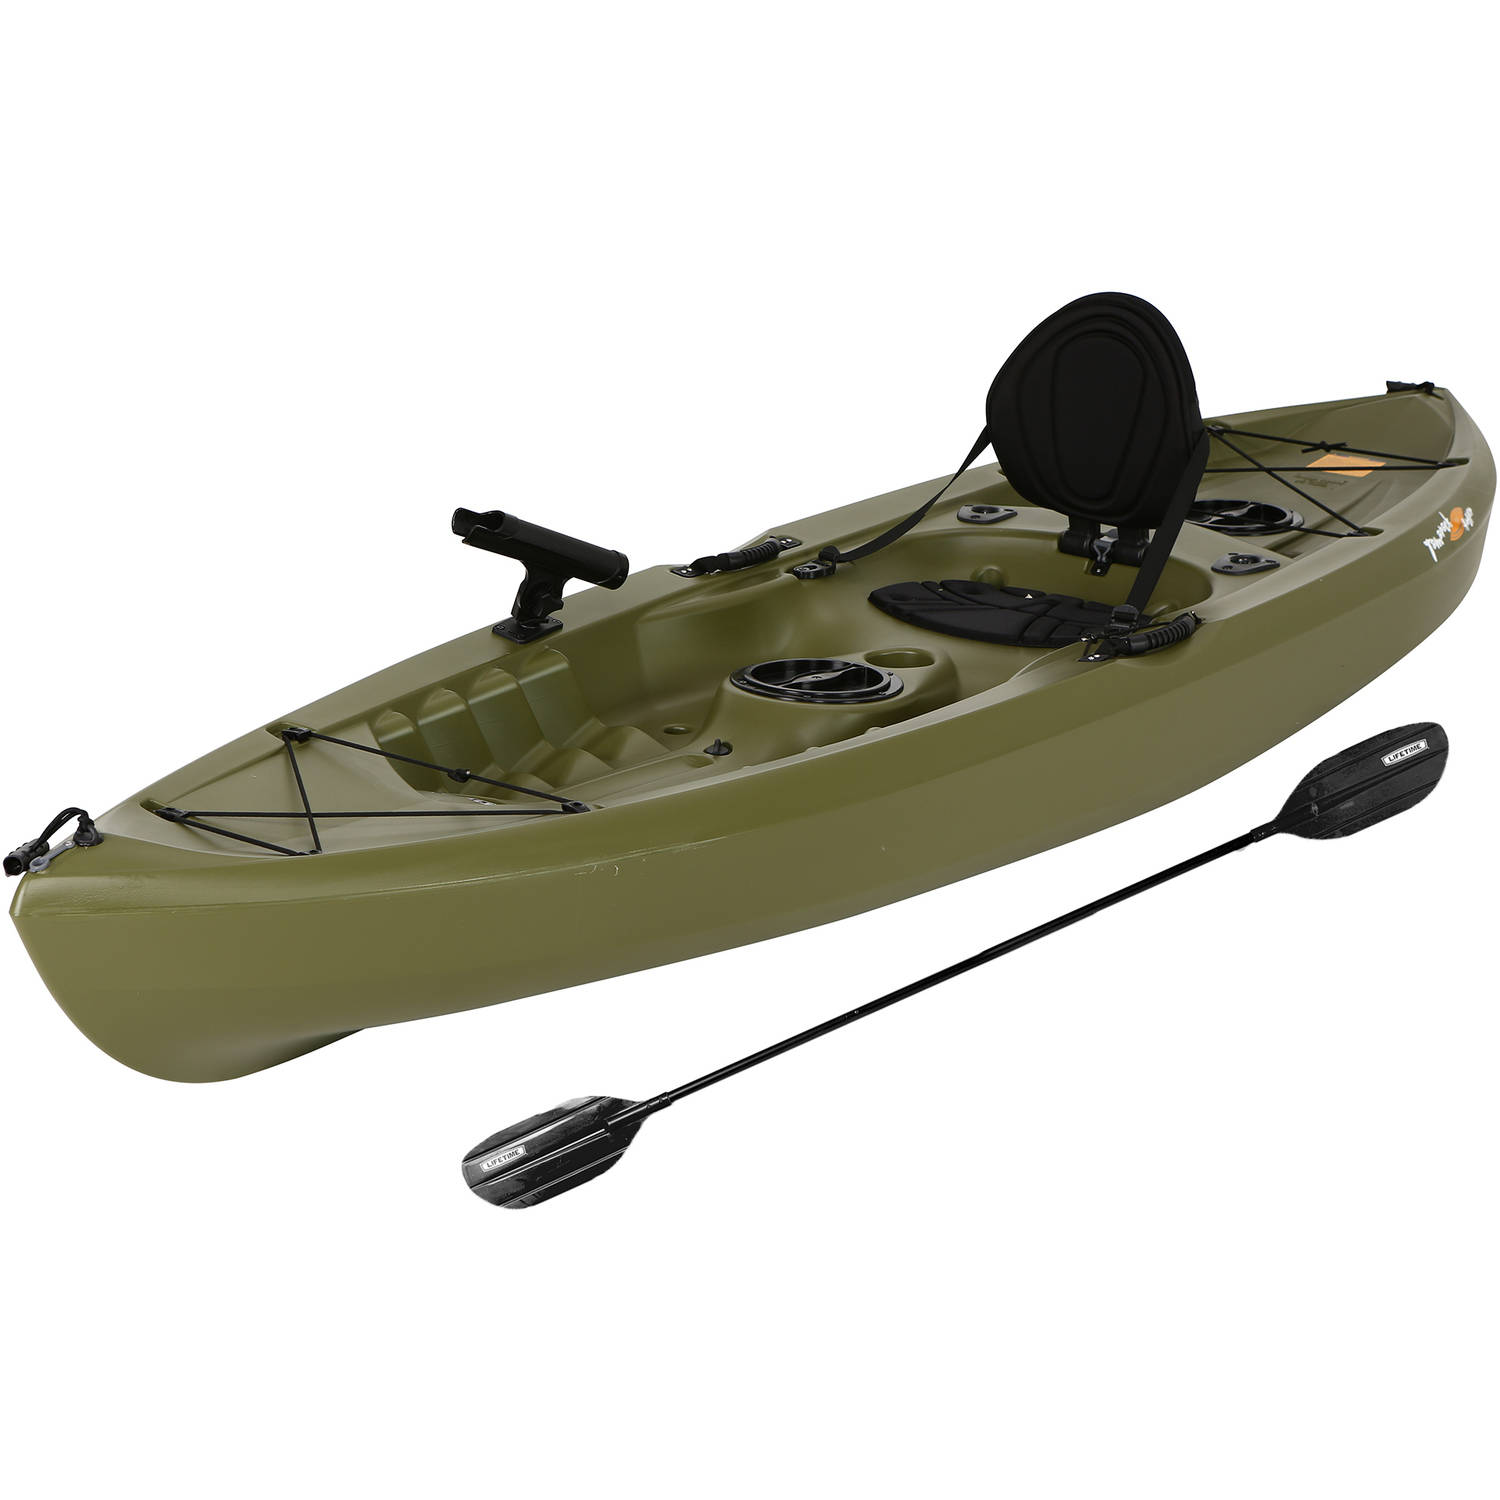 Lifetime Tamarack 120 Angler Kayak, Olive Green Image 1 of 7